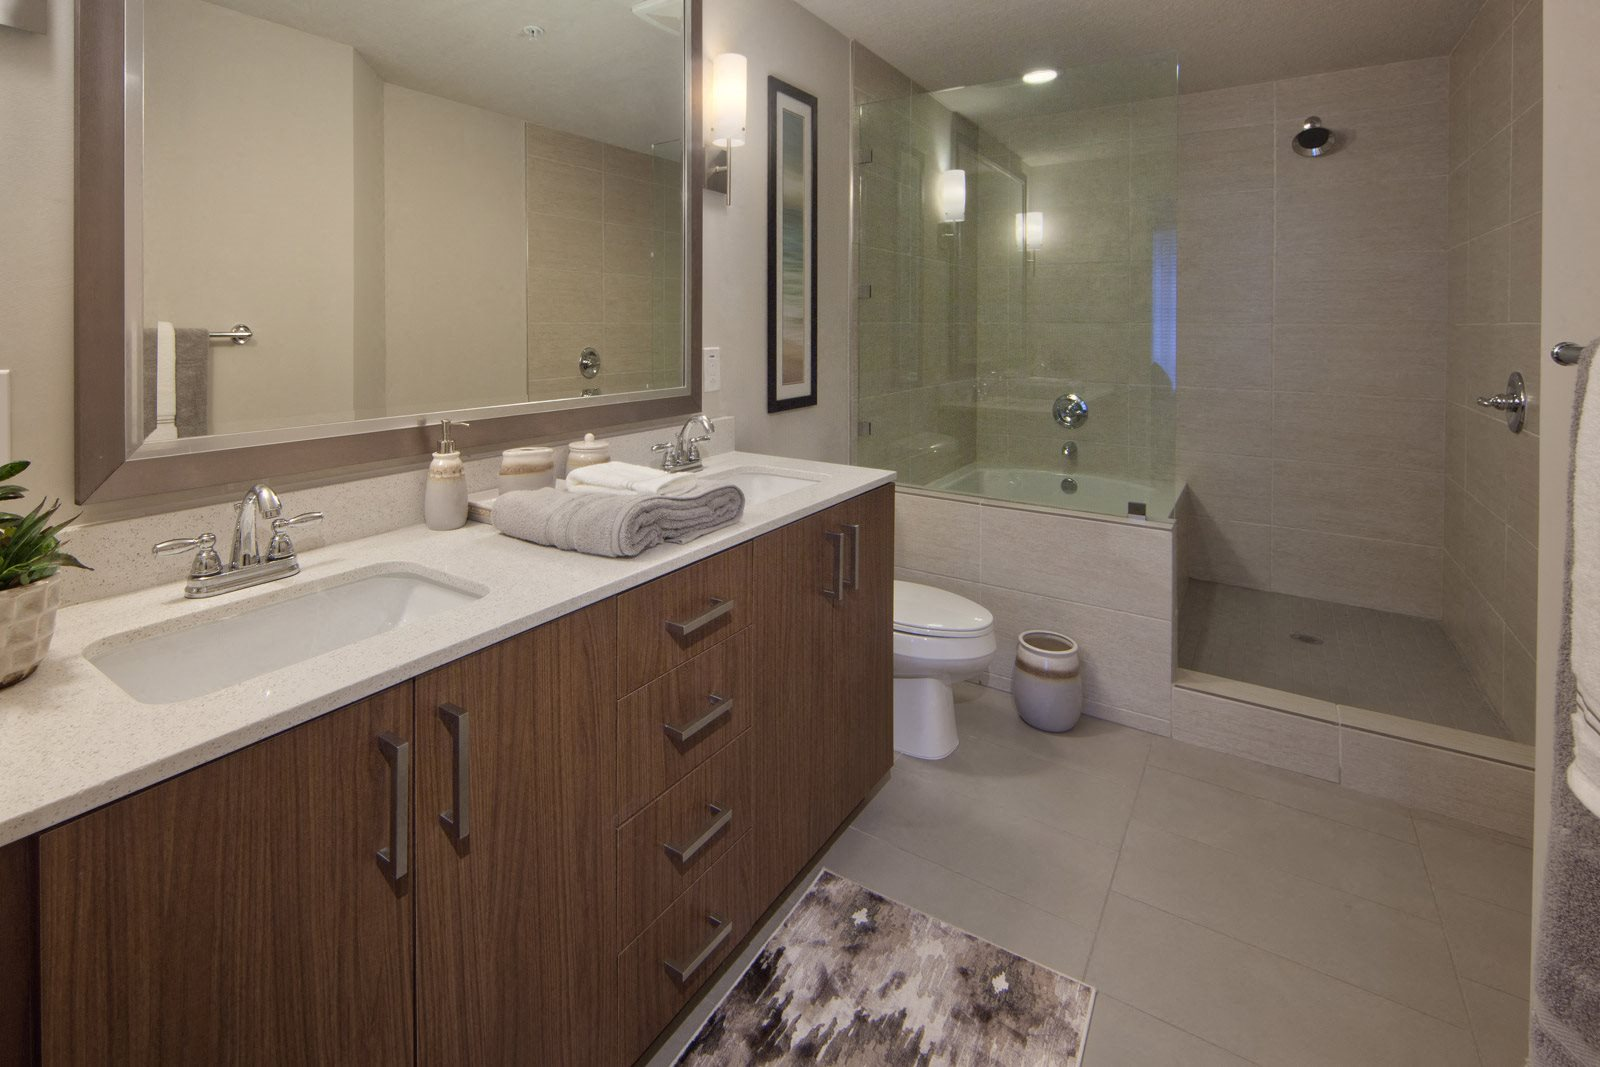 Spa-Inspired Bathrooms at Windsor at Doral, 4401 NW 87th Avenue, FL